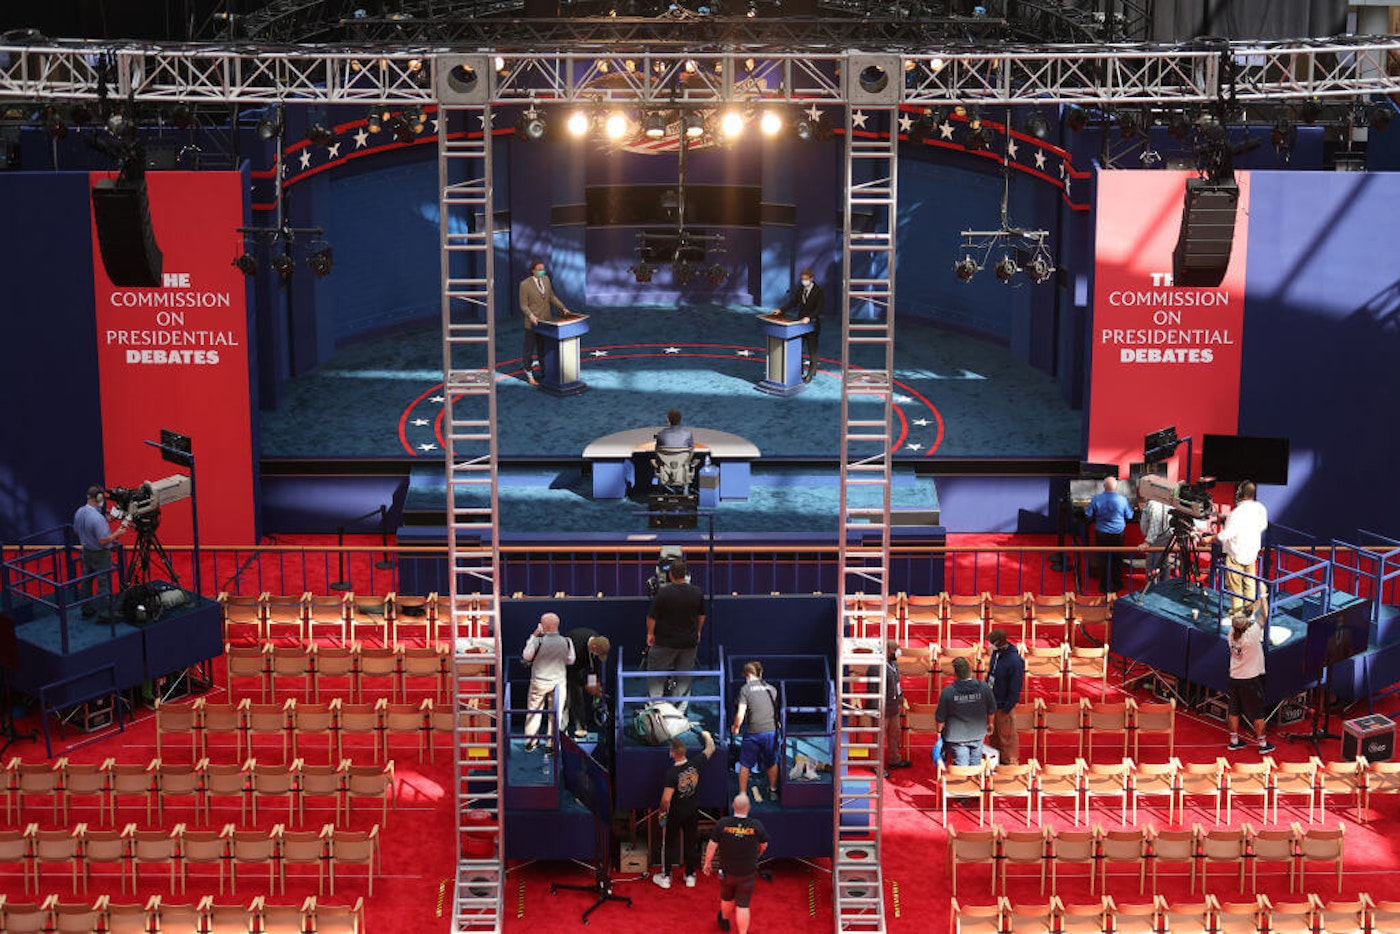 President Trump and Democratic presidential nominee Joe Biden will debate on this stage at Case Western Reserve University and the Cleveland Clinic on September 29, 2020 in Cleveland, Ohio. (Photo by Win McNamee/Getty Images)